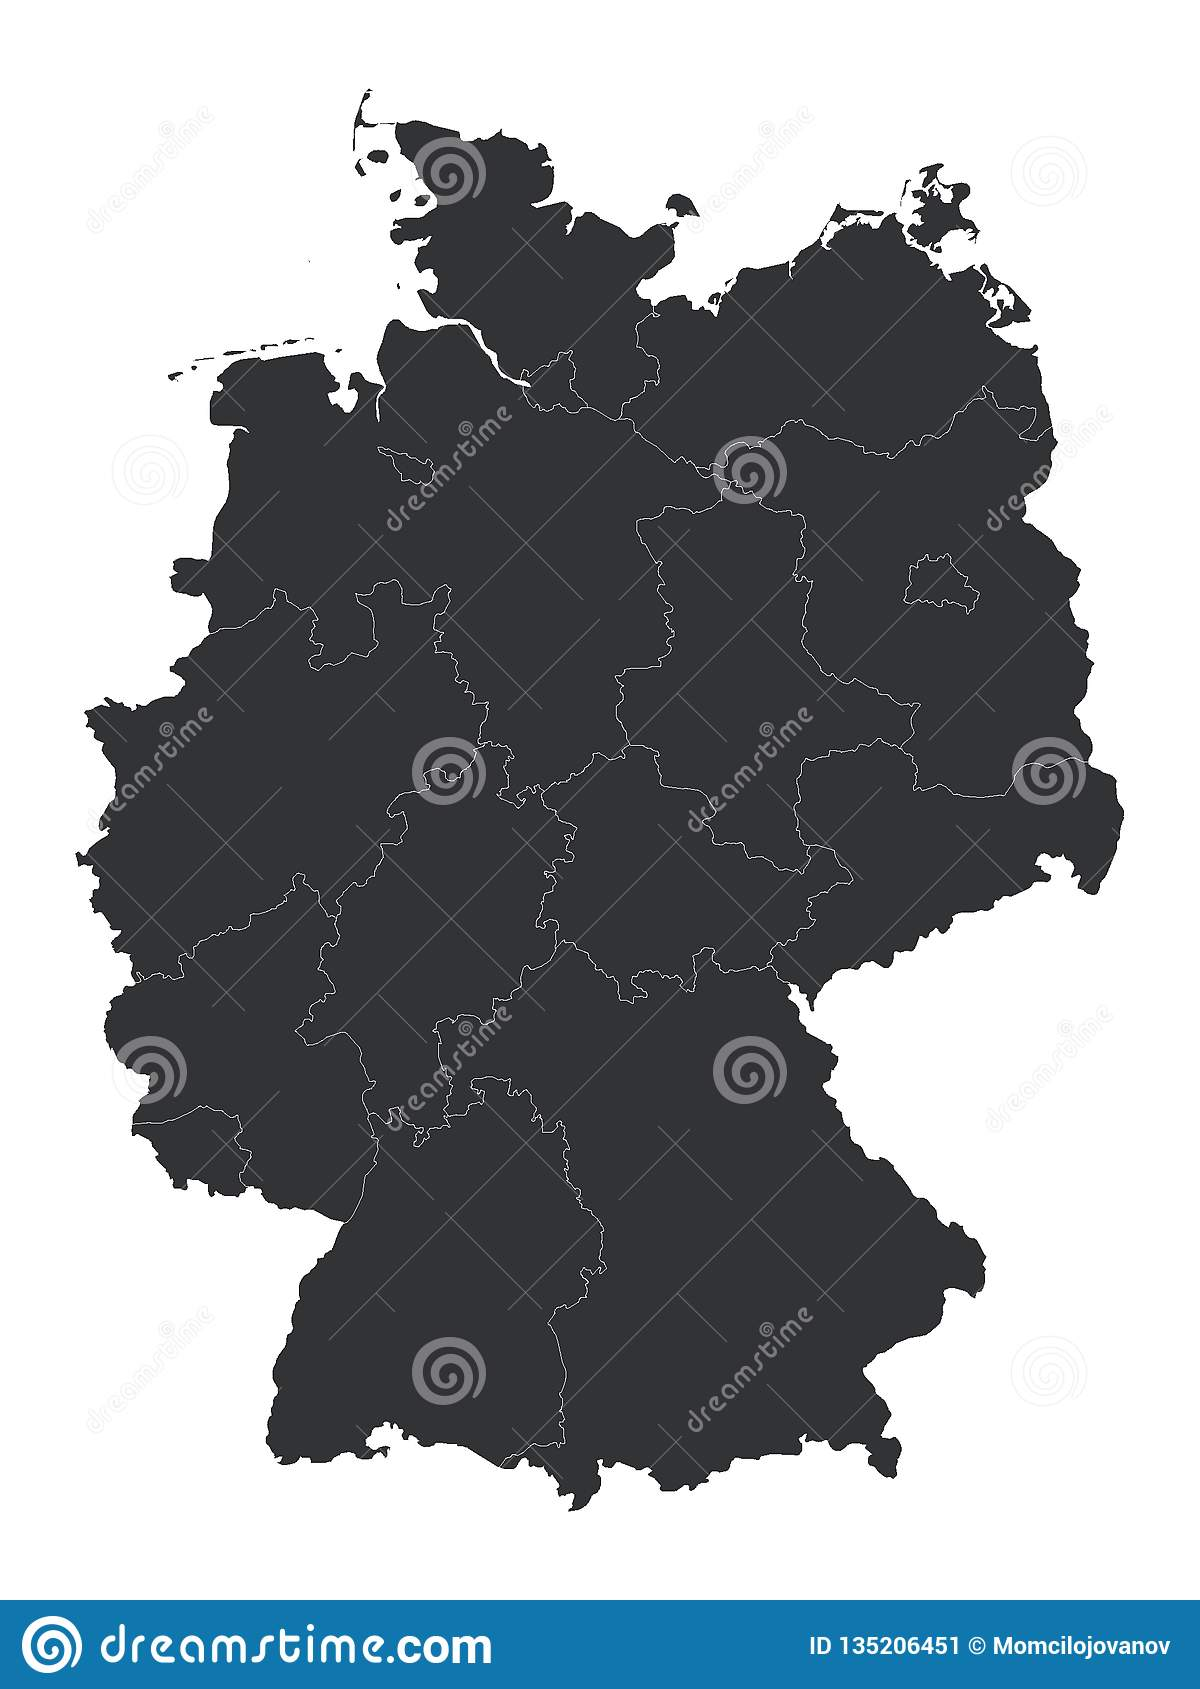 Map Of Germany With Provinces Stock Vector - Illustration of ... Germany Provinces Map on germany industry map, germany political map, germany cities map, germany travel map, germany landmark map, germany water map, east germany map, germany major city map, germany surname map, germany country map, germany latitude map, germany power map, germany world map, germany located on map, germany road map, germany capital map, germany culture map, germany map with states, germany region map, germany postal map,